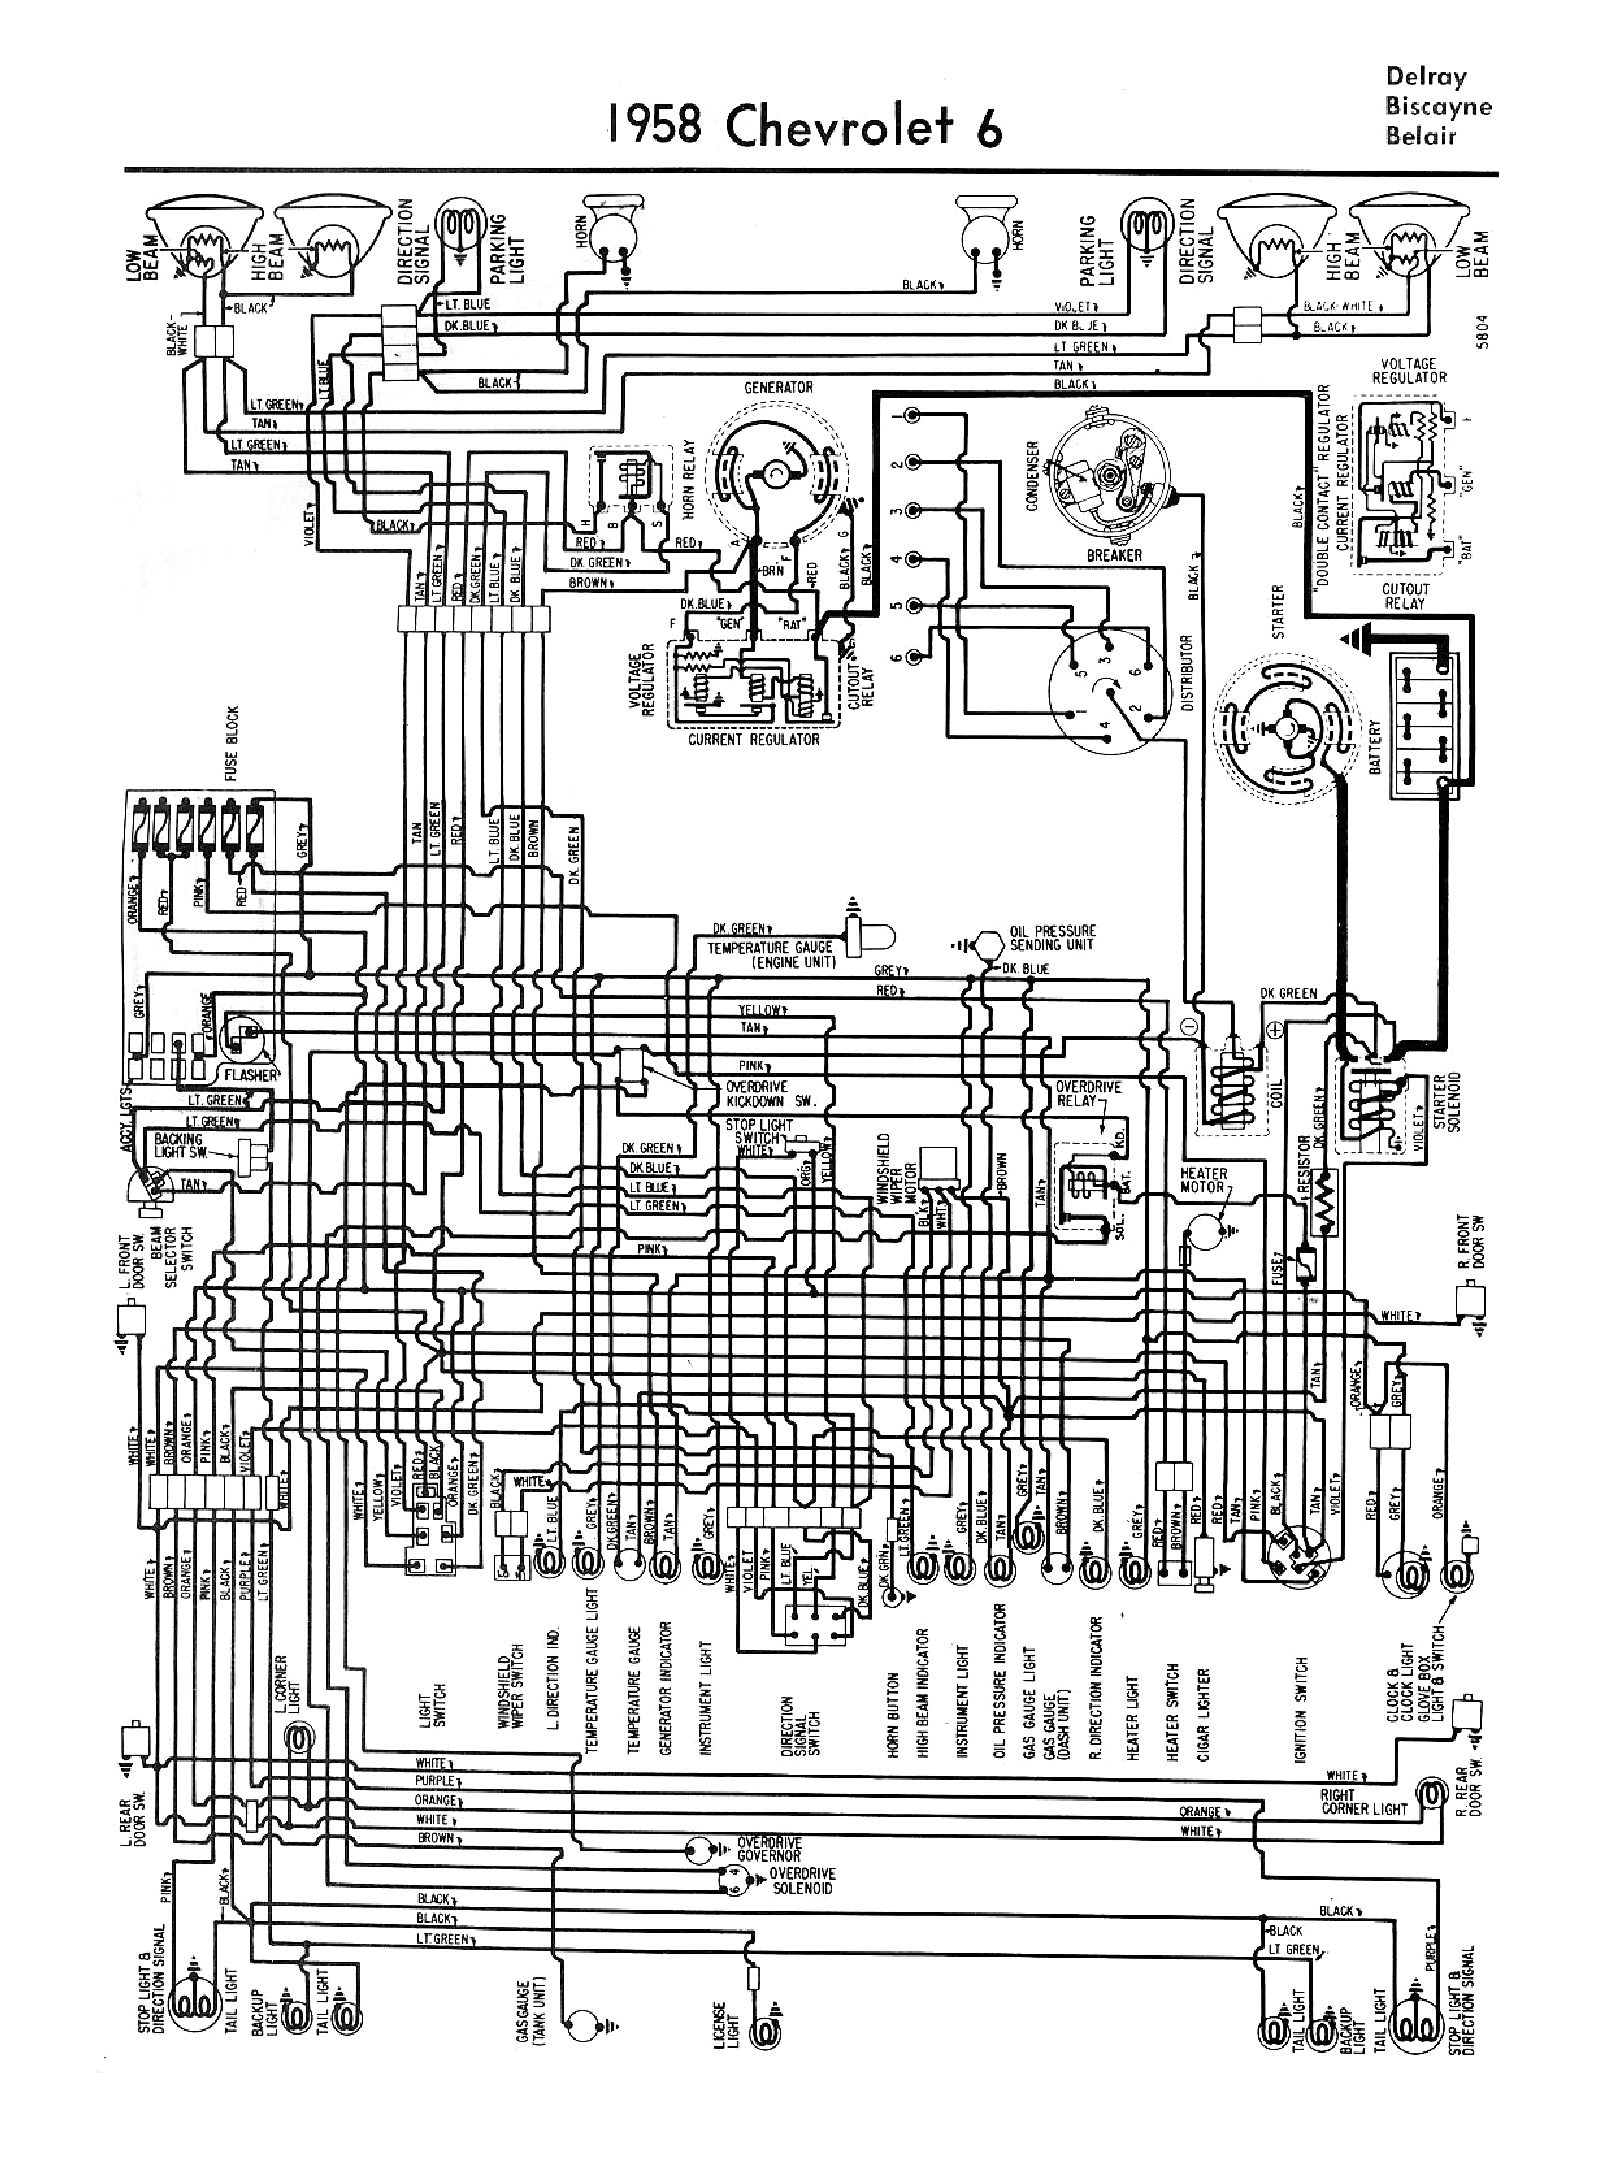 I on 1959 chevy truck wiring diagram